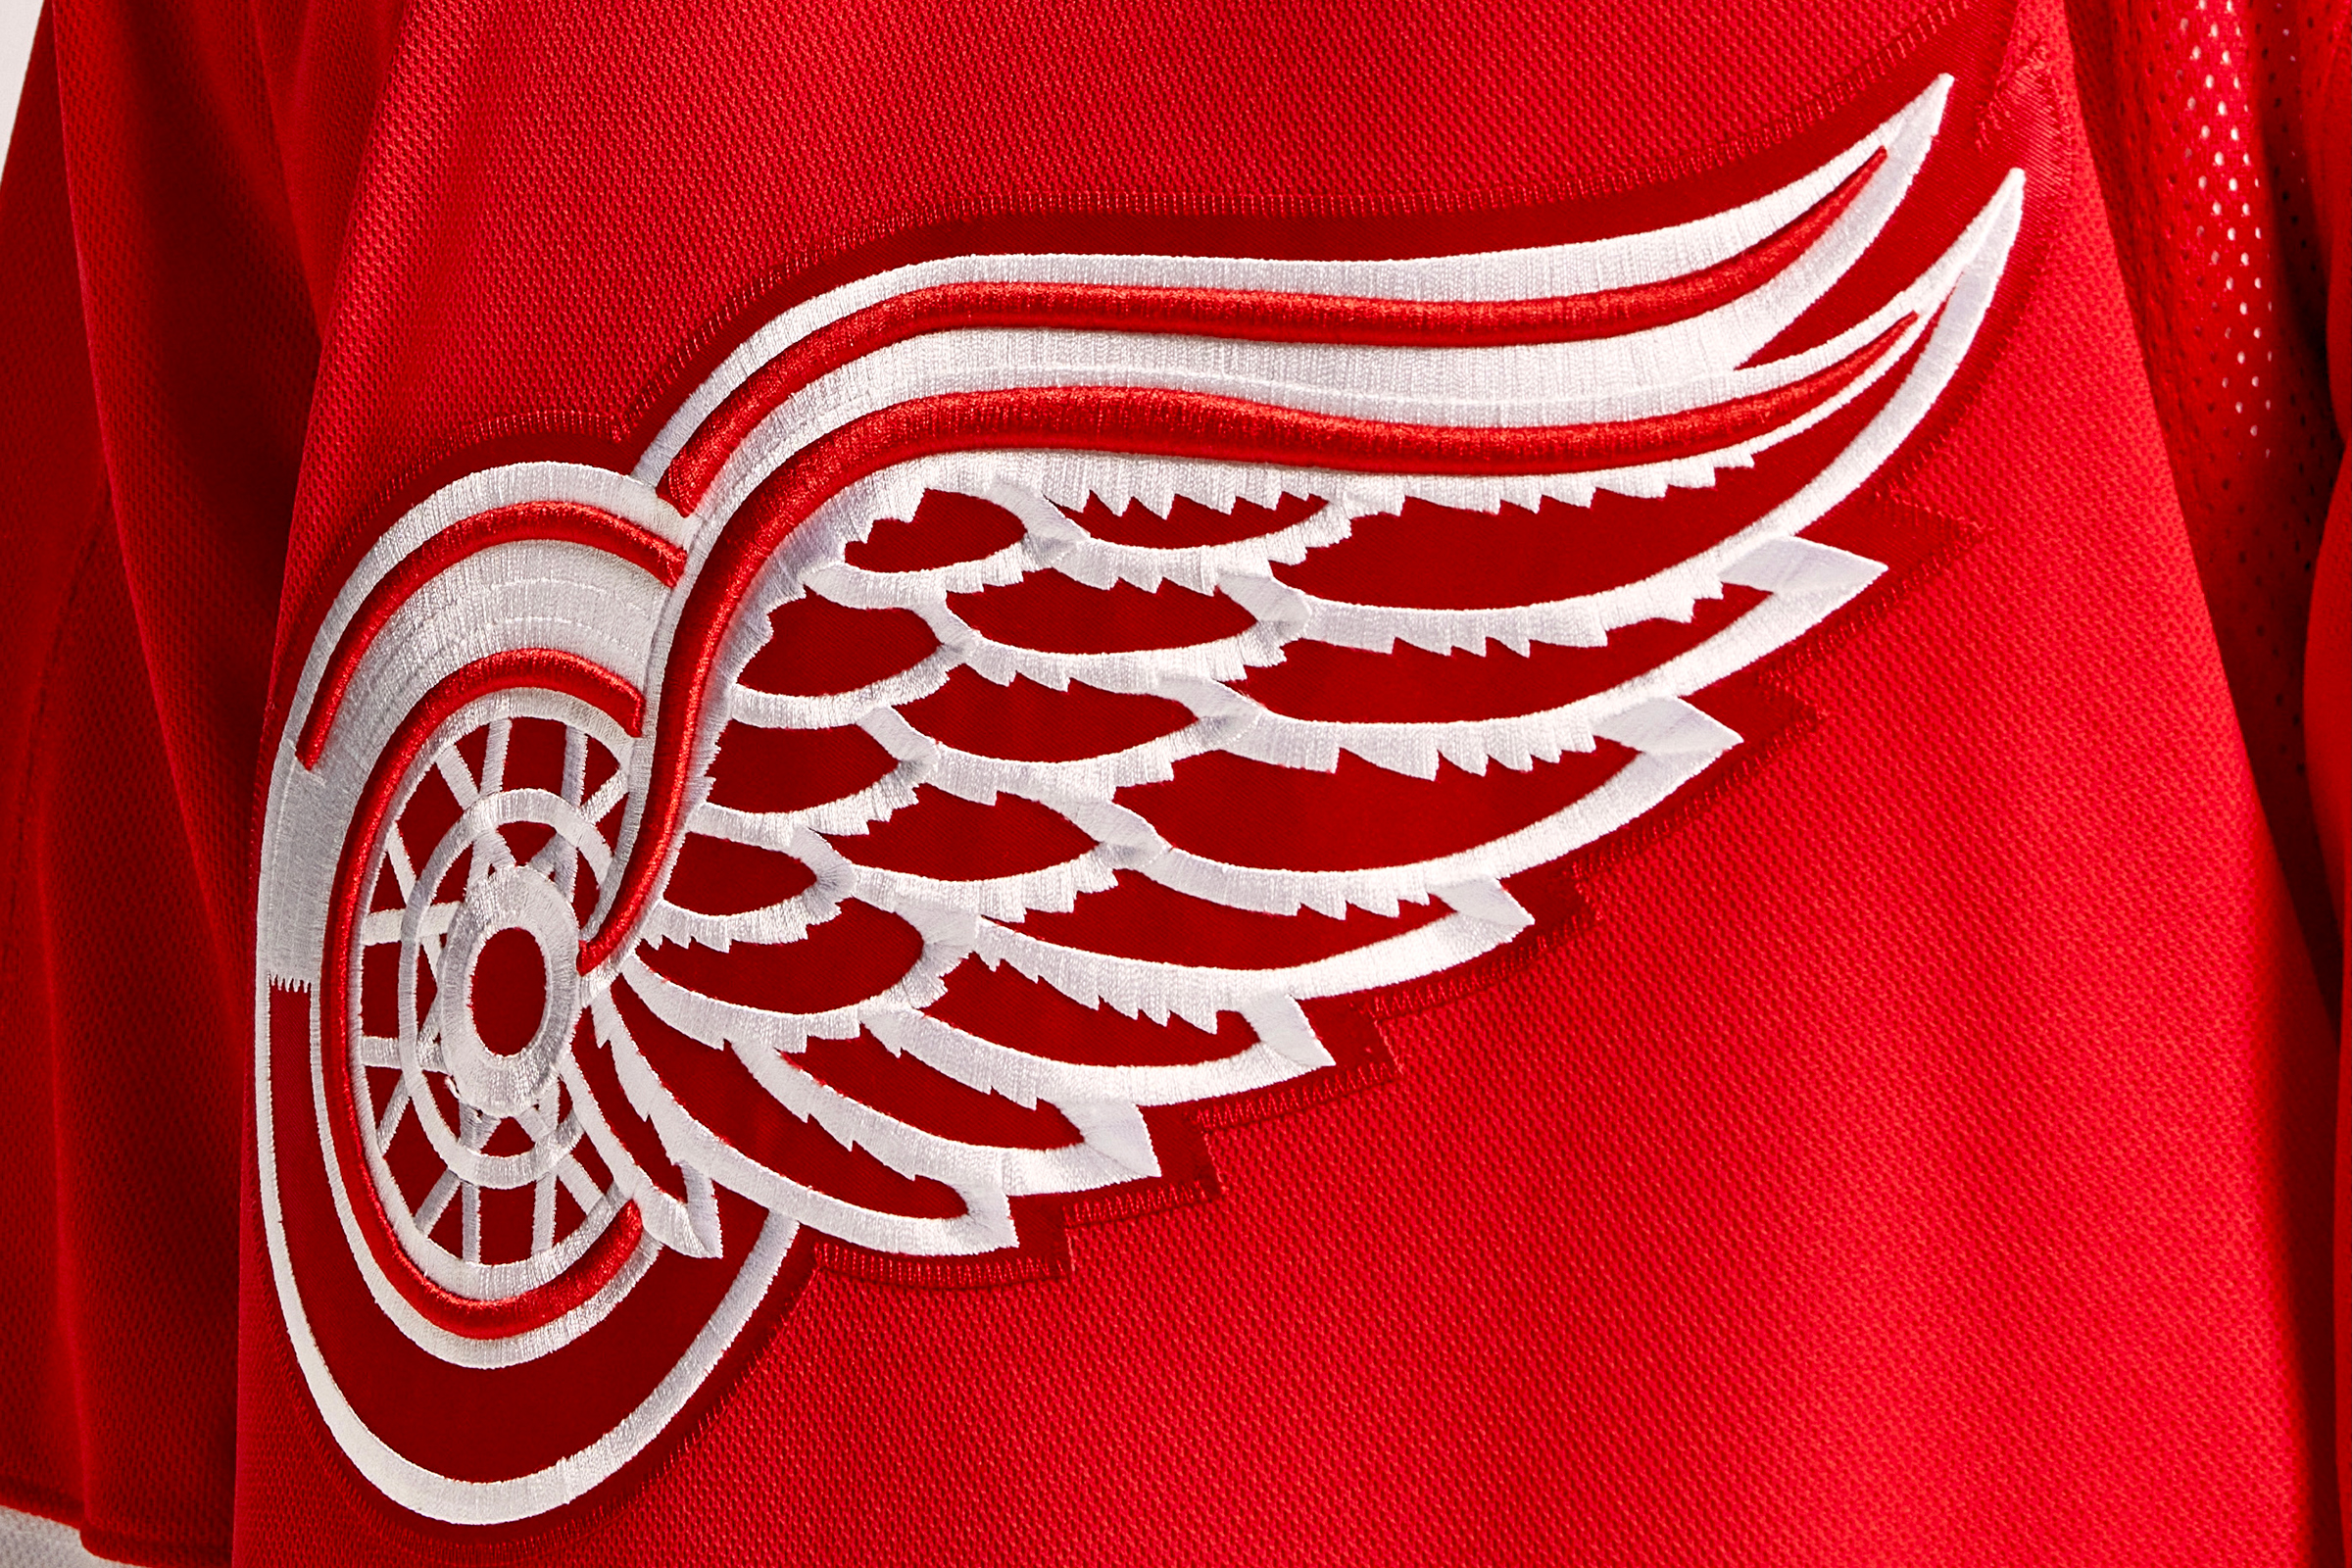 The Red Wings' jersey.